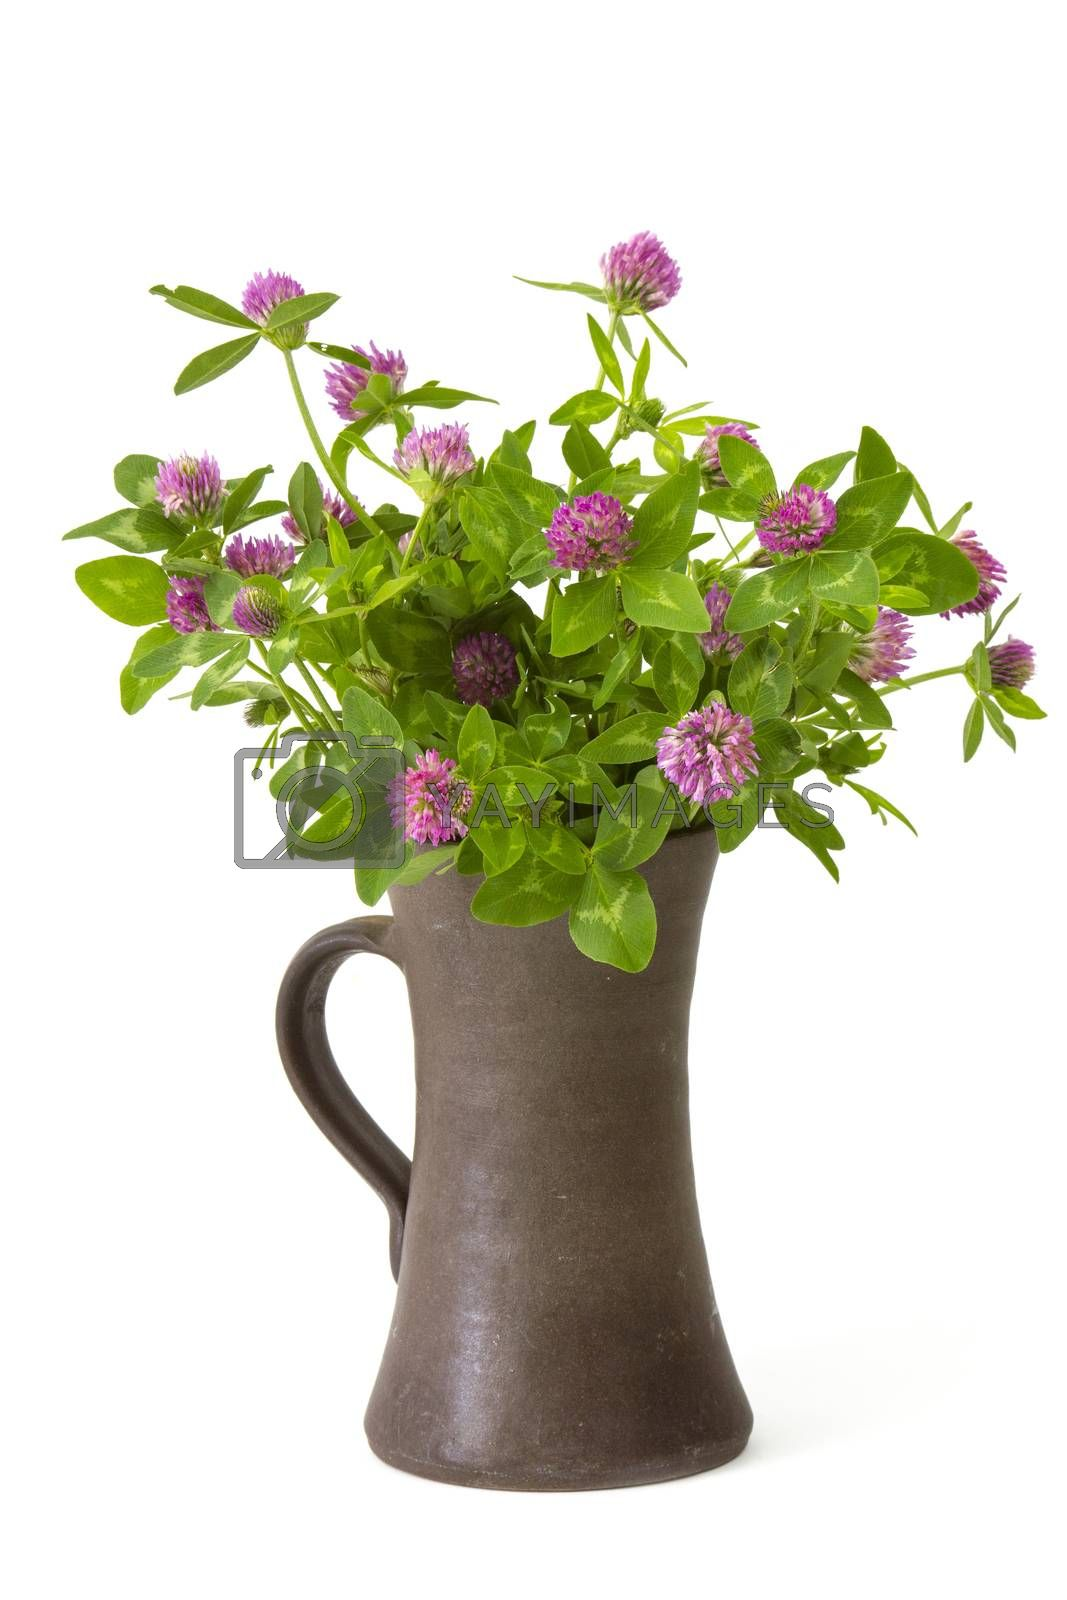 Royalty free image of Bunch of clover in a vase by miradrozdowski